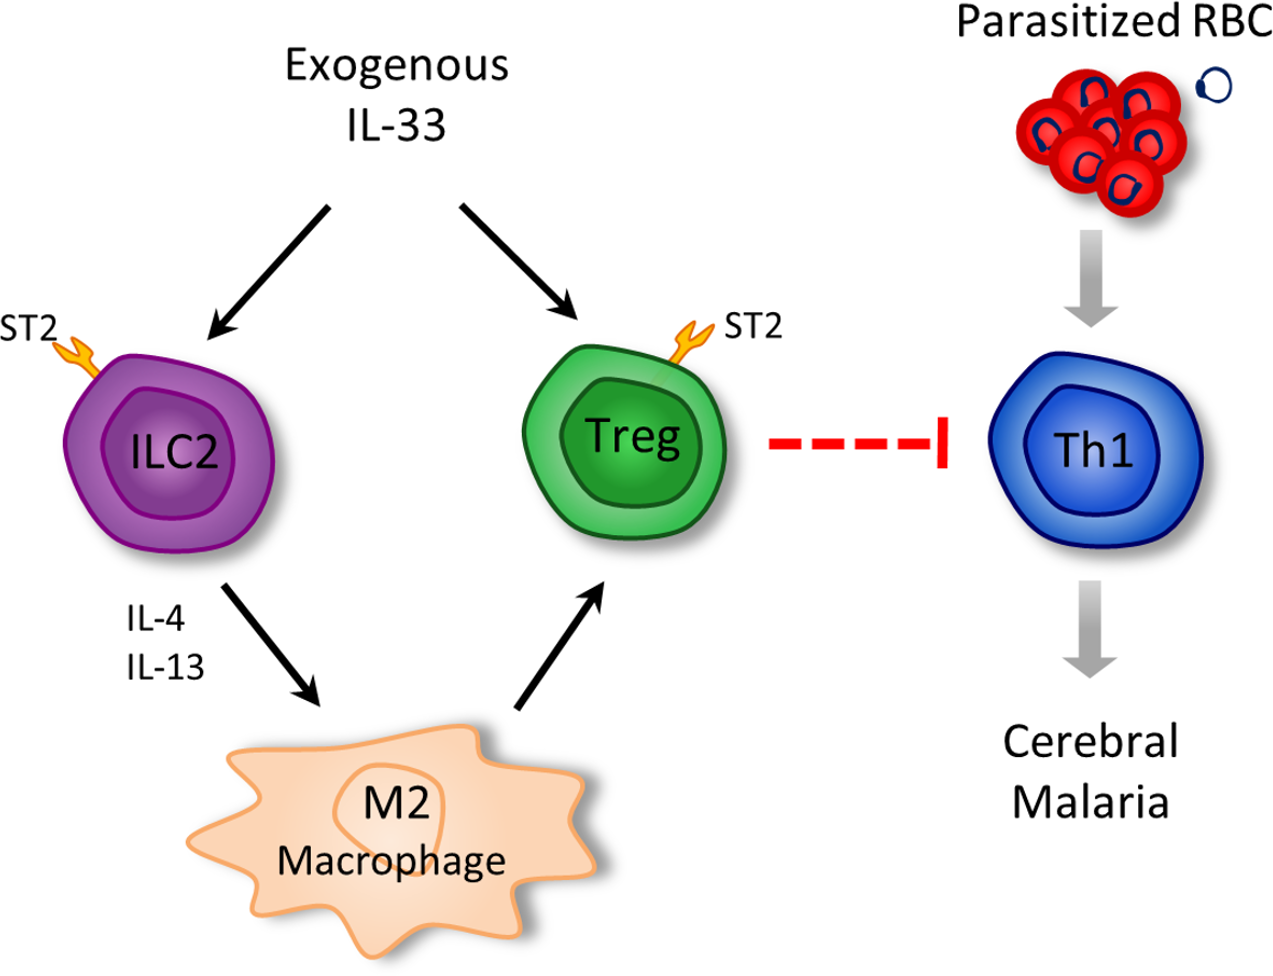 Schematic representation of the pathways by which IL-33 attenuates ECM.